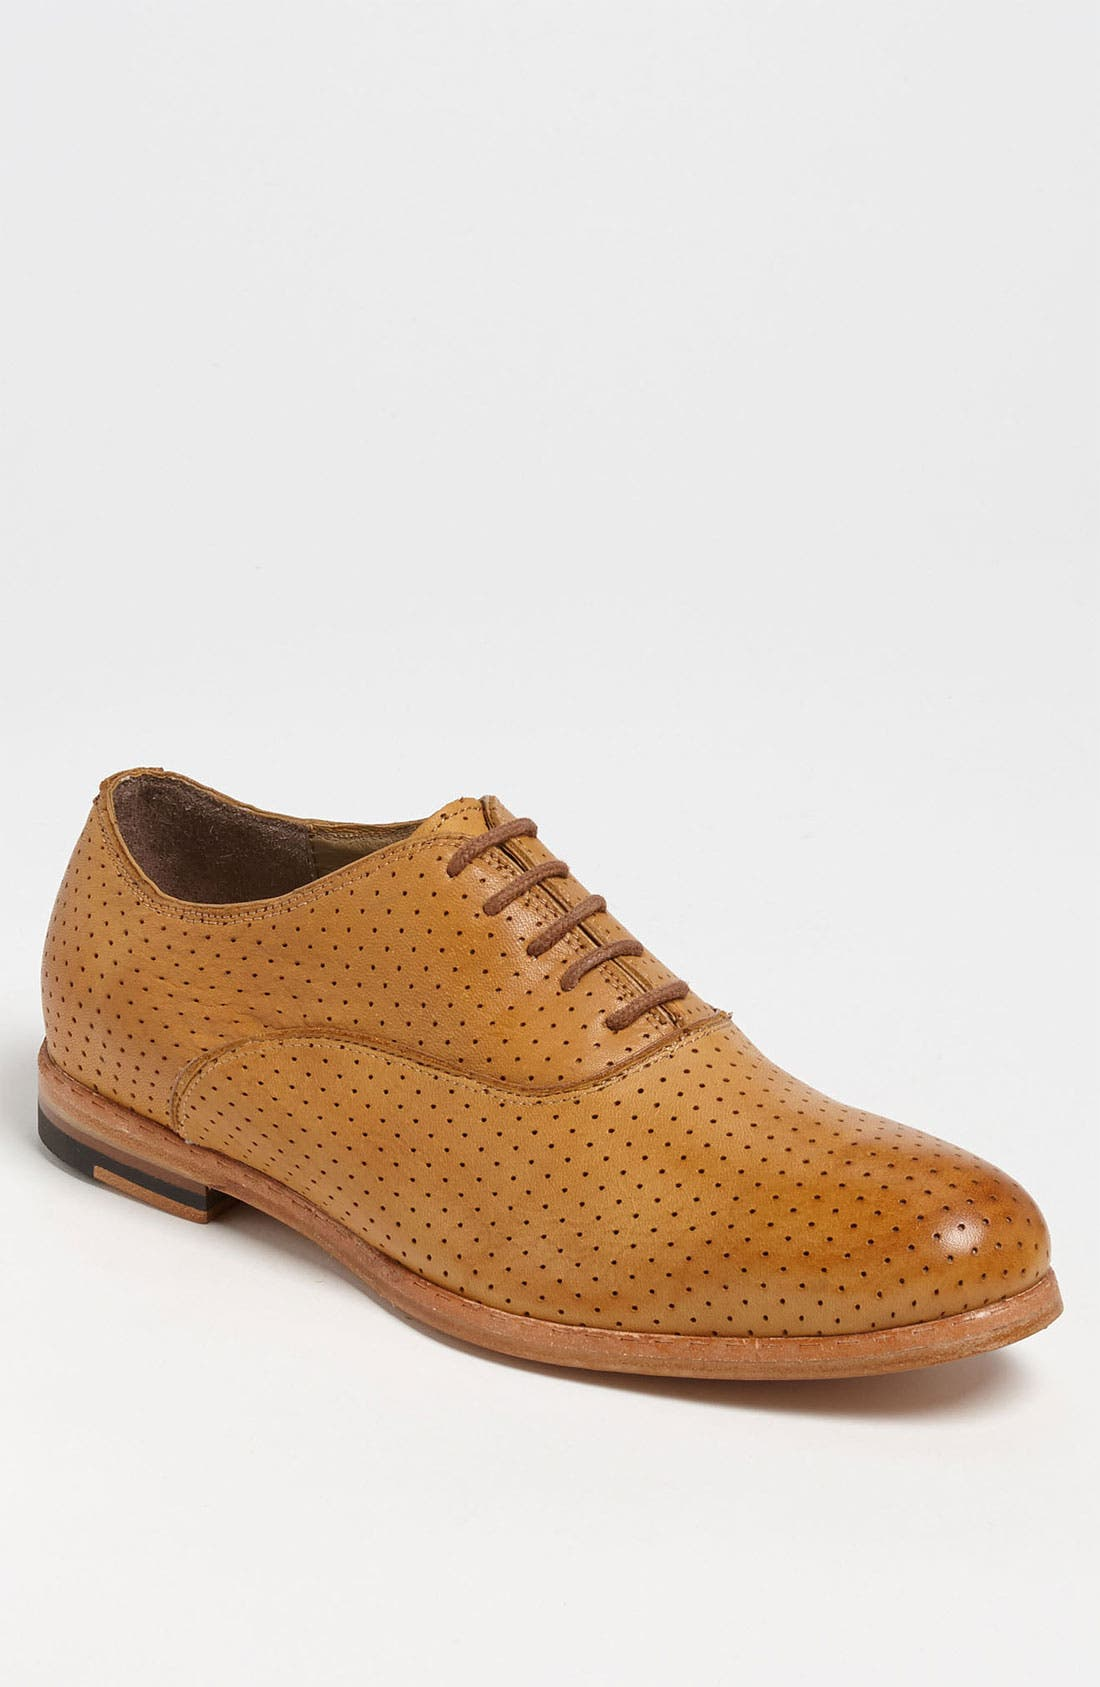 Alternate Image 1 Selected - J.D. Fisk 'Moore' Perforated Oxford